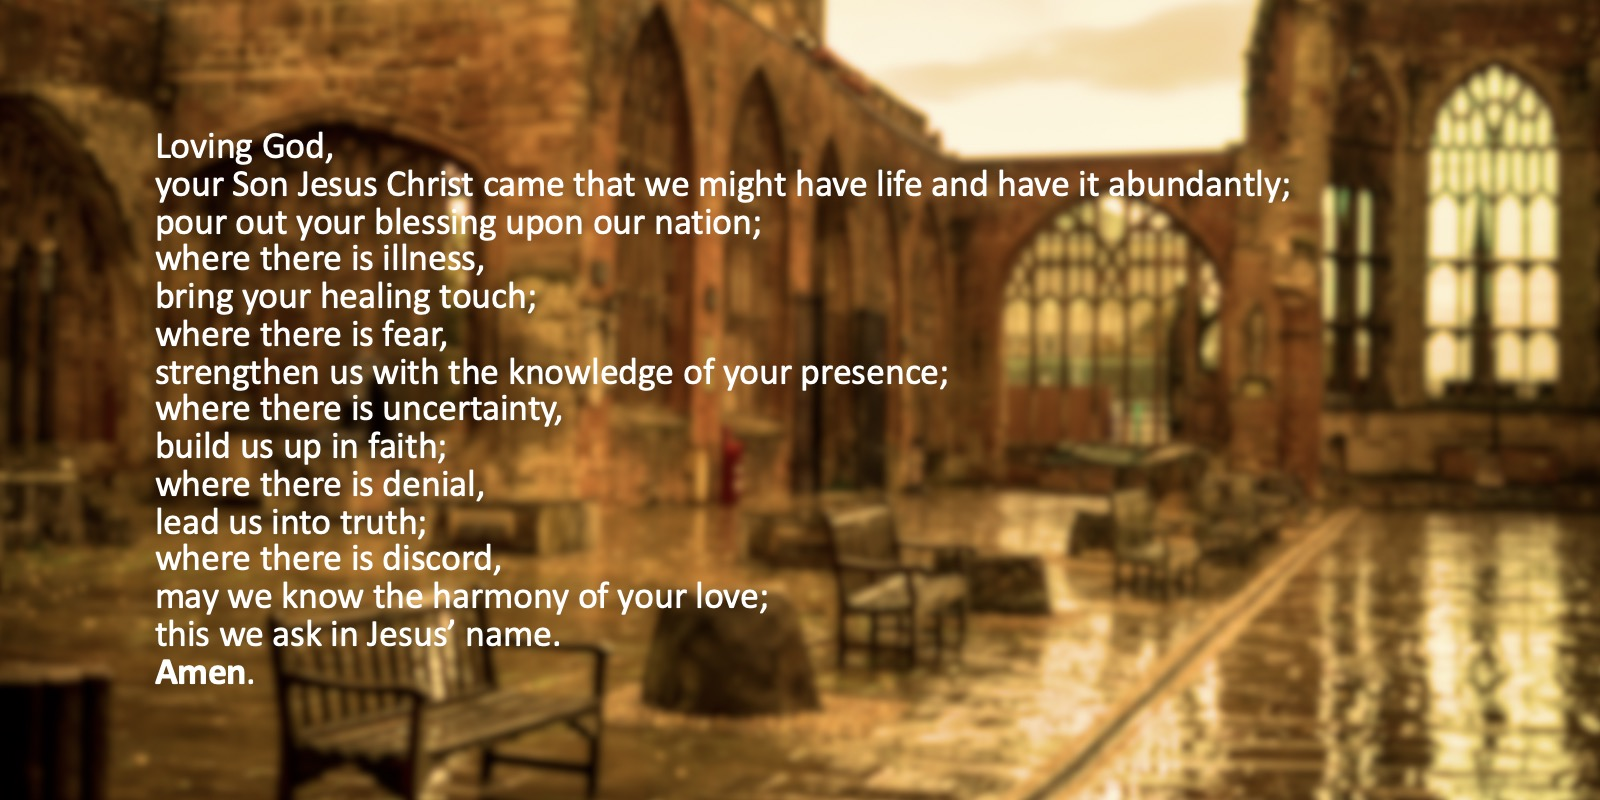 Prayer for the Nation Further COVID 19 Restrictions